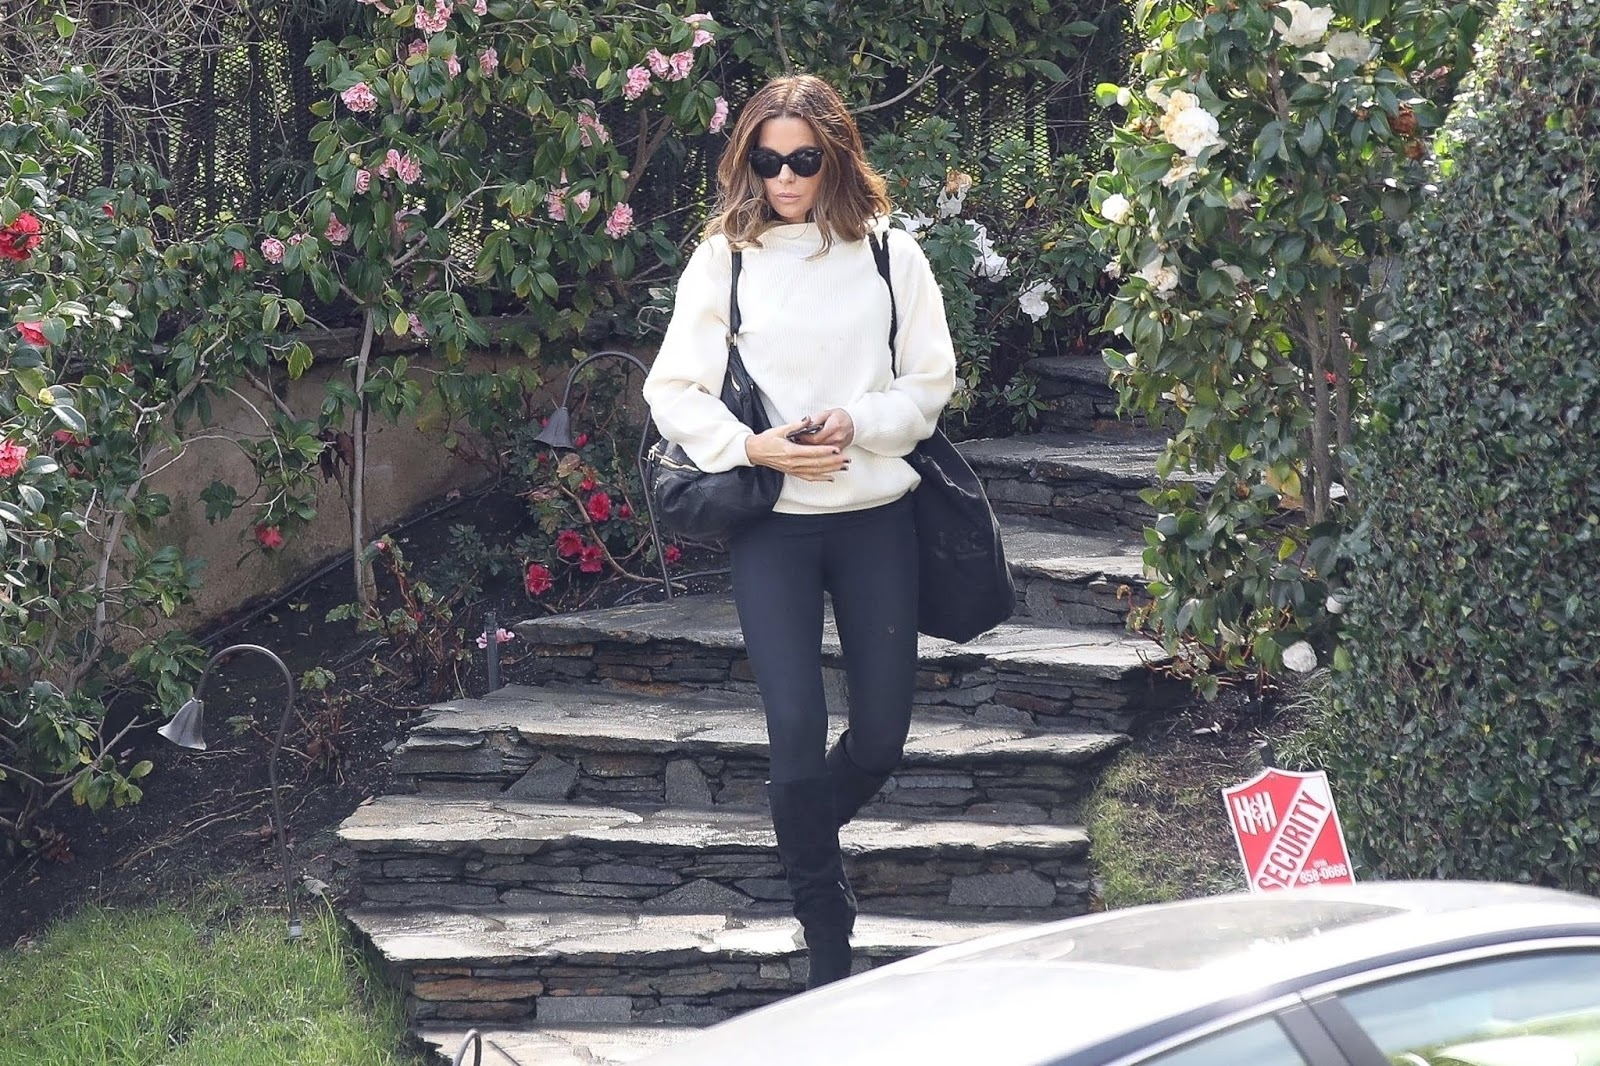 Kate Beckinsale leaving her home in Brentwood - 02/05/2019